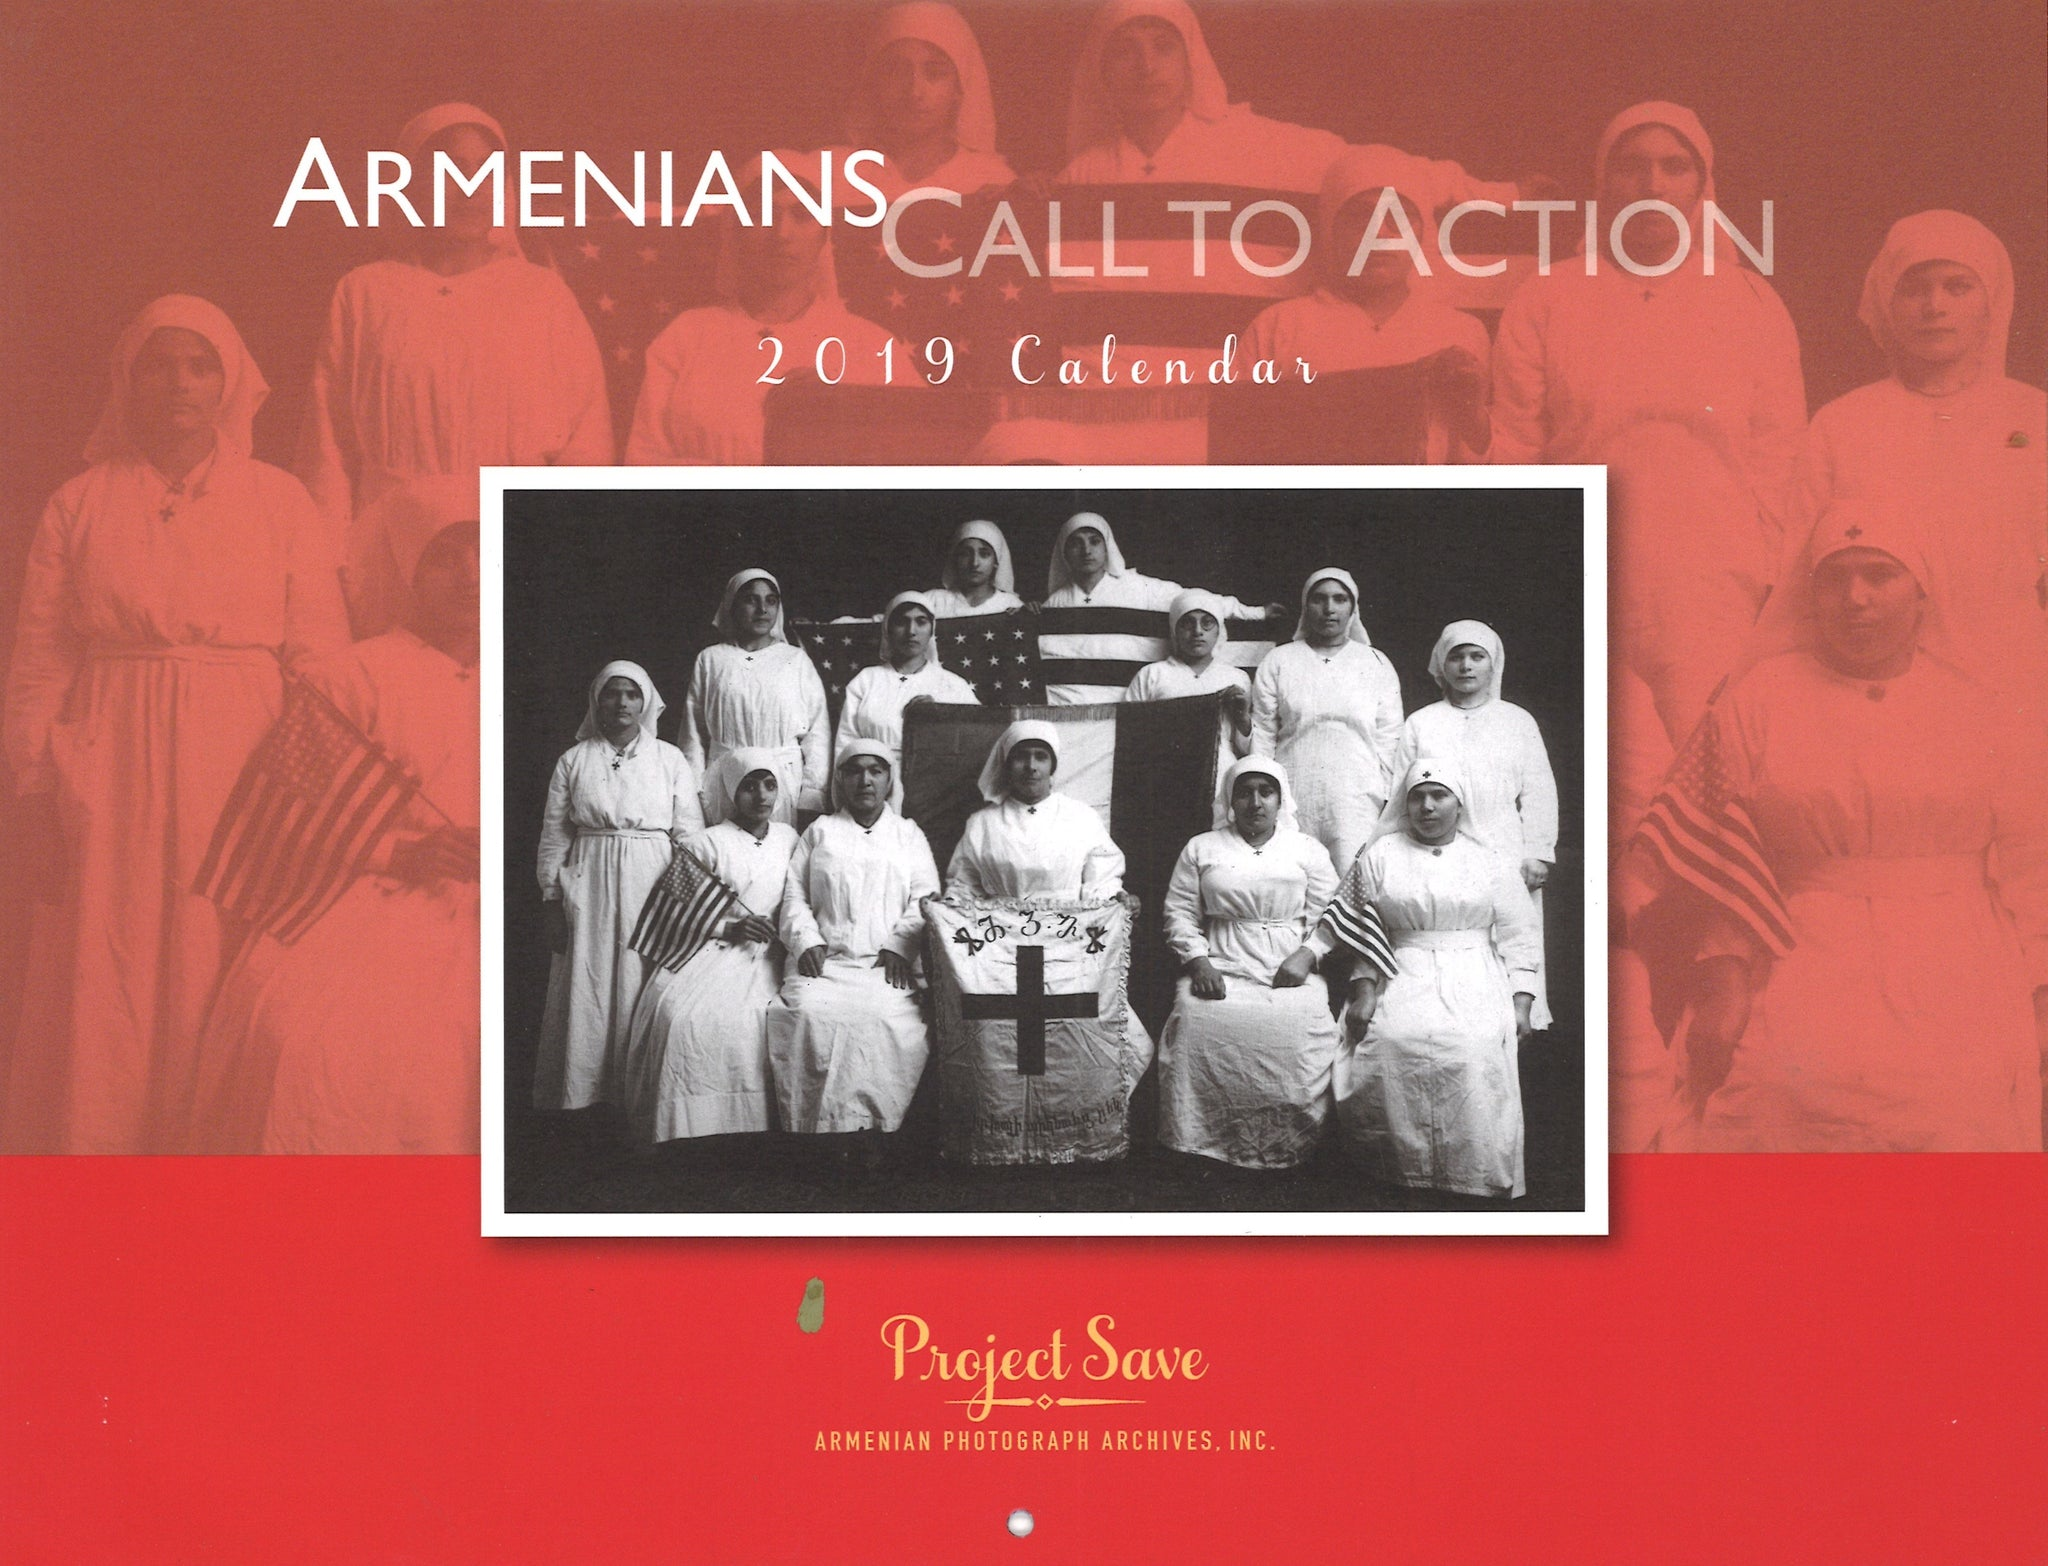 PROJECT SAVE CALENDAR 2019: Armenians Call to Action